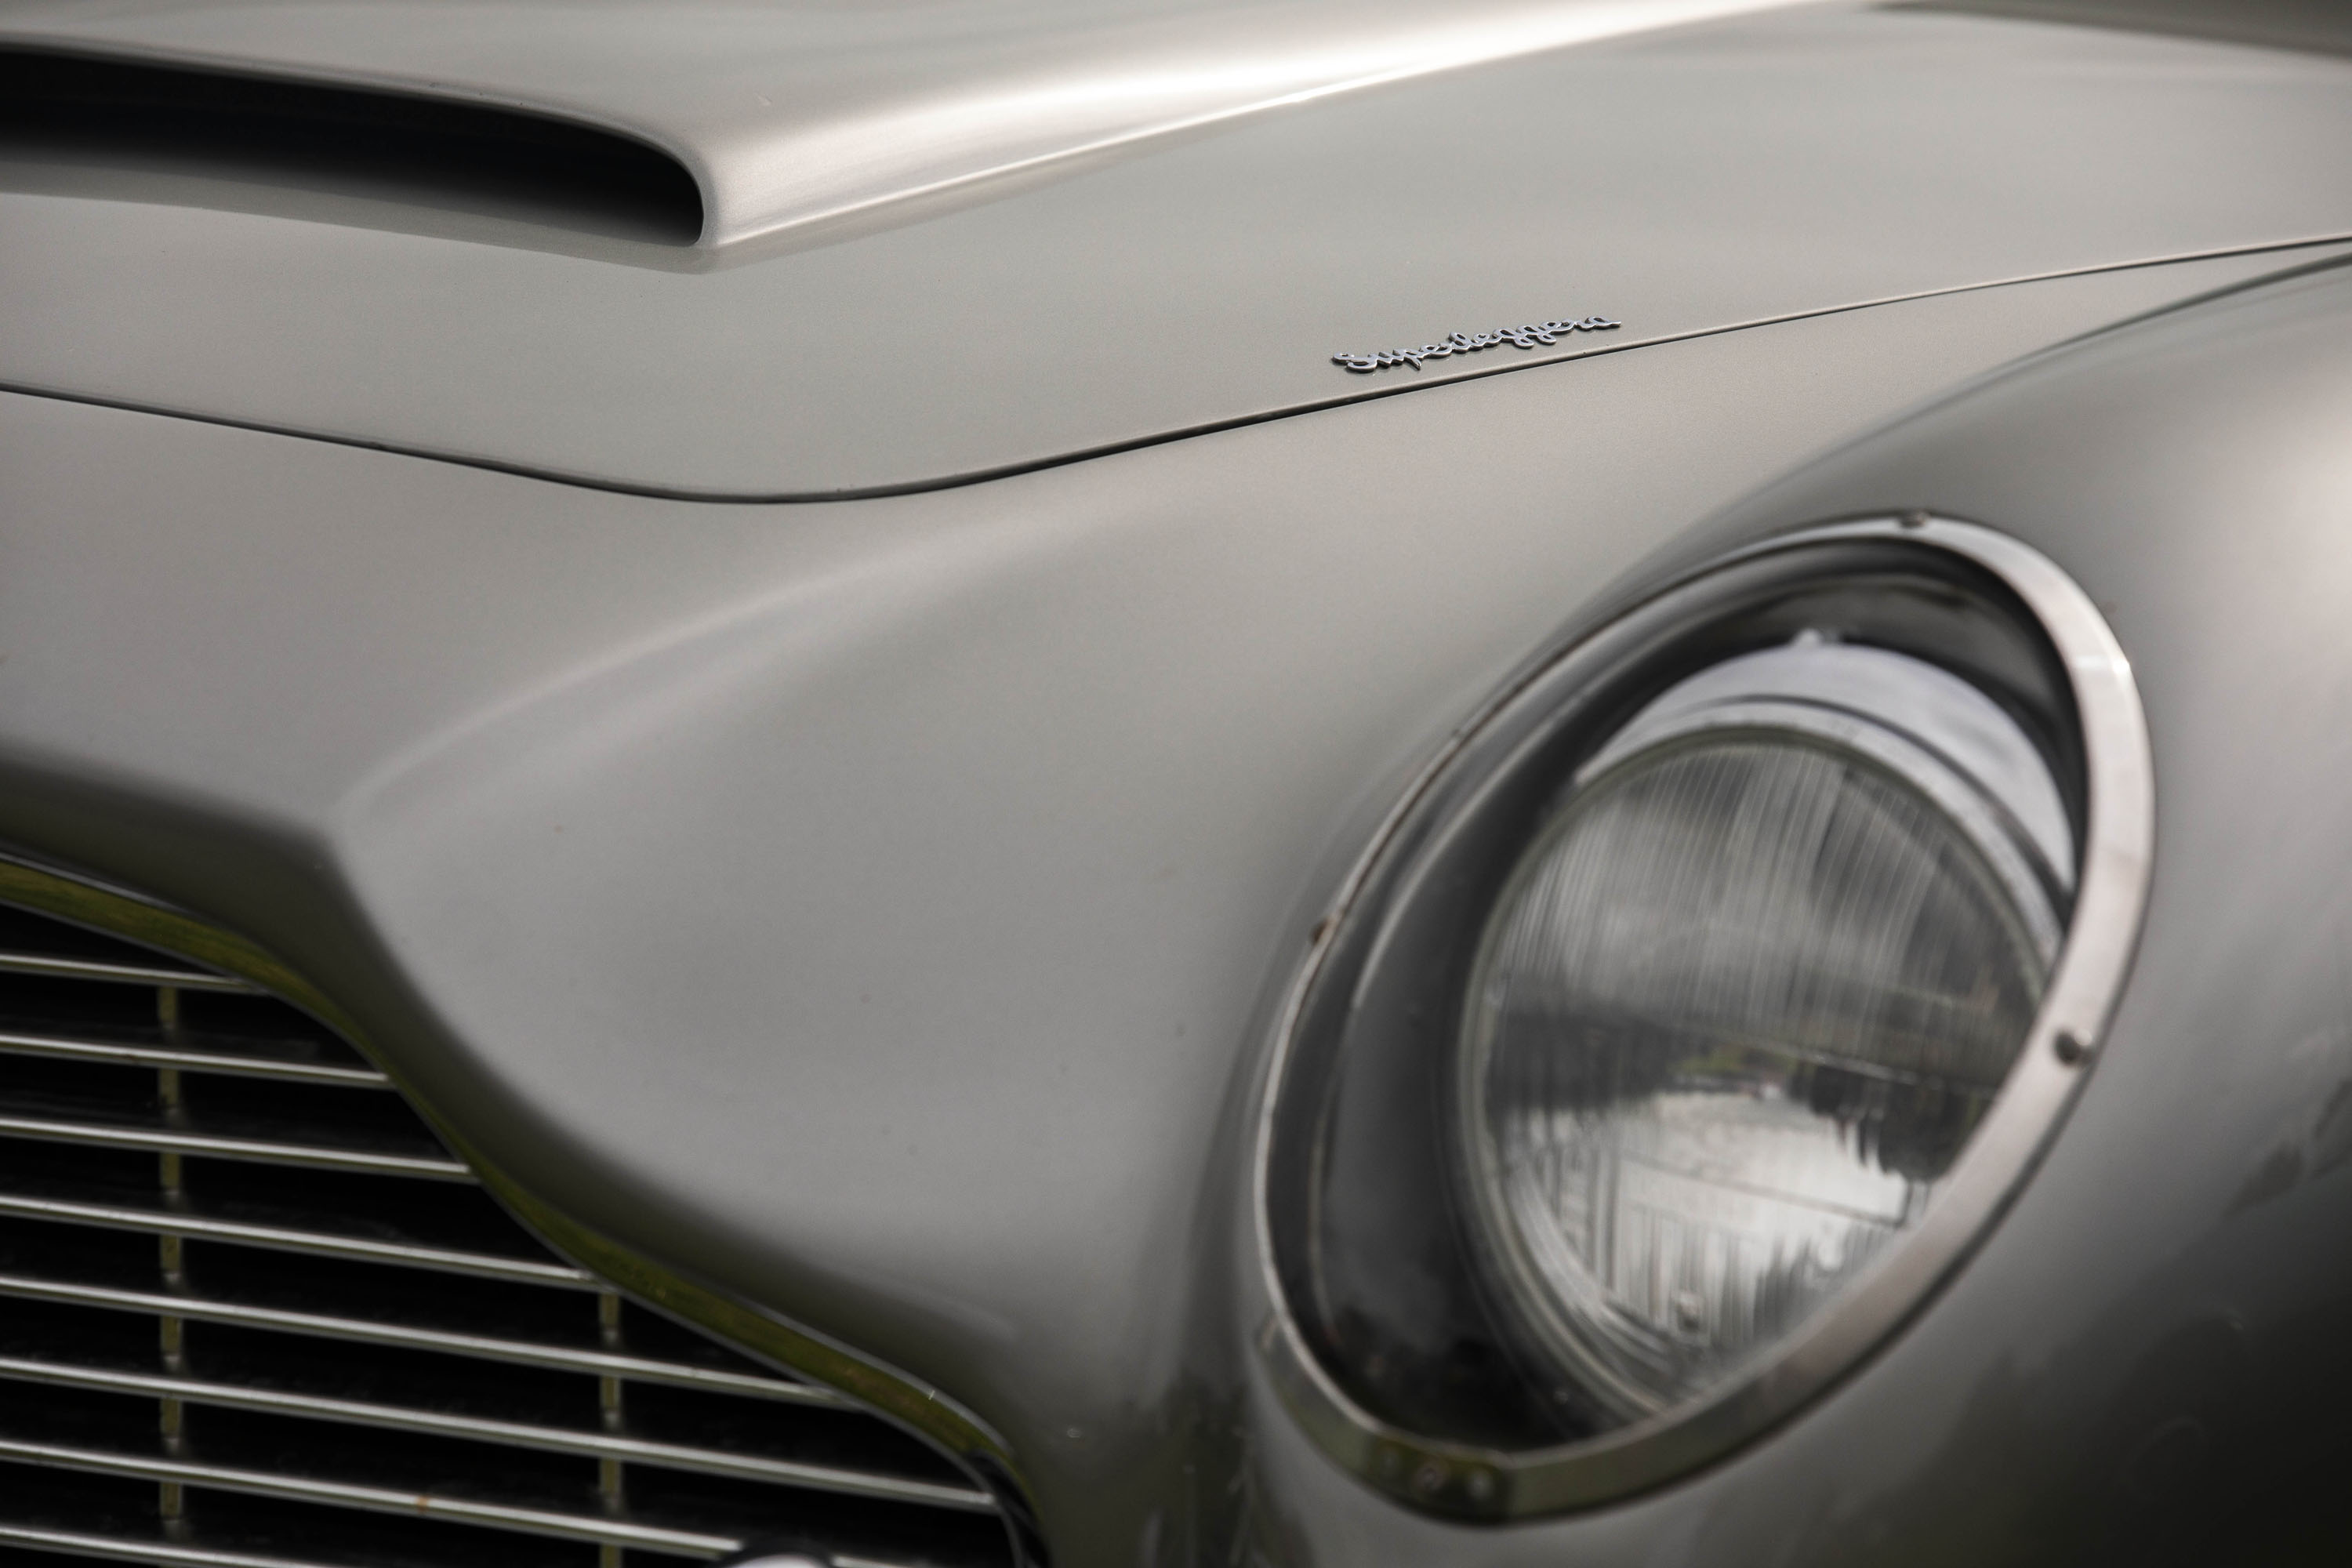 Aston Martin DB5 headlight